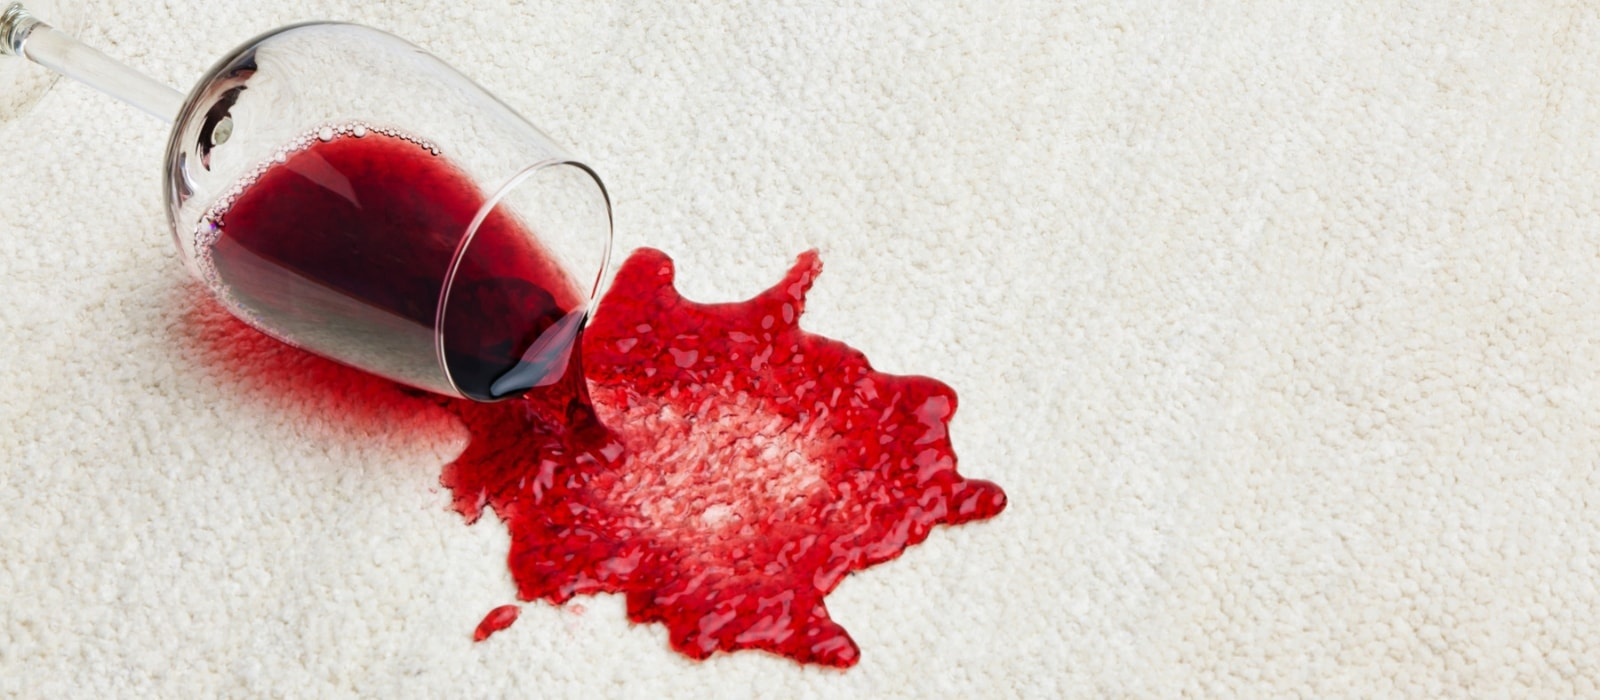 How to Get Wine Out of the Carpet| How to get a wine stain out of the carpet| How to Get Dried Wine Out of the Carpet| Get Wine Out of Carpet| How to Get Red Wine Out of the Carpet| #wine #redwine #wineincarpet